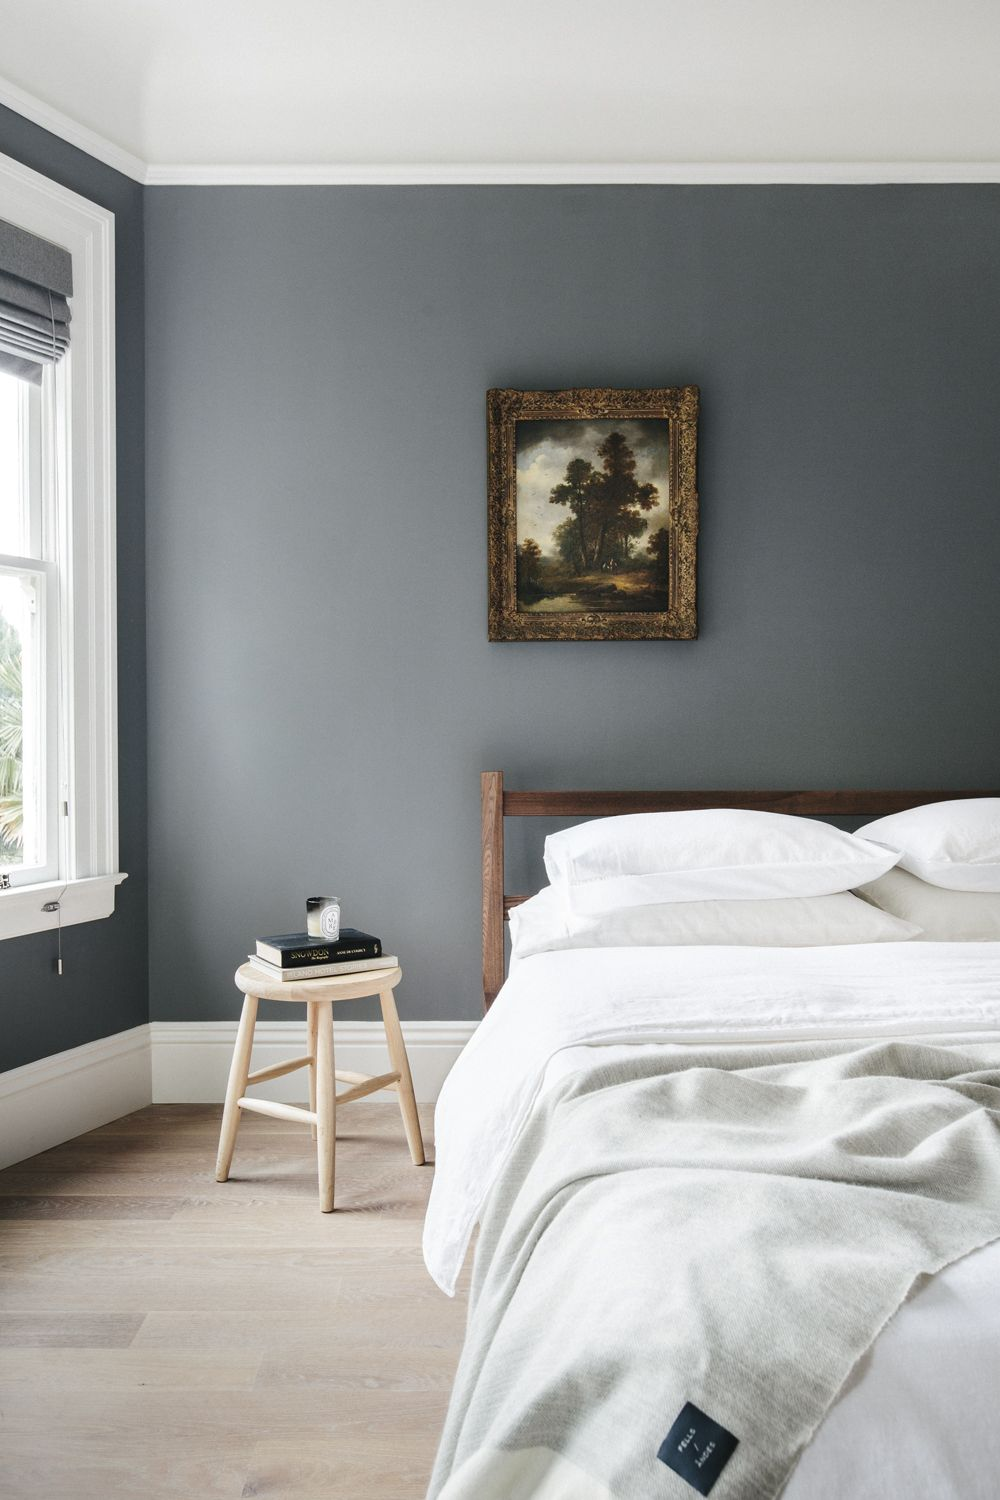 Bedding To Go With Grey Walls Part - 36: Luft4 More. Bedroom Color SchemesBedroom Wall ...